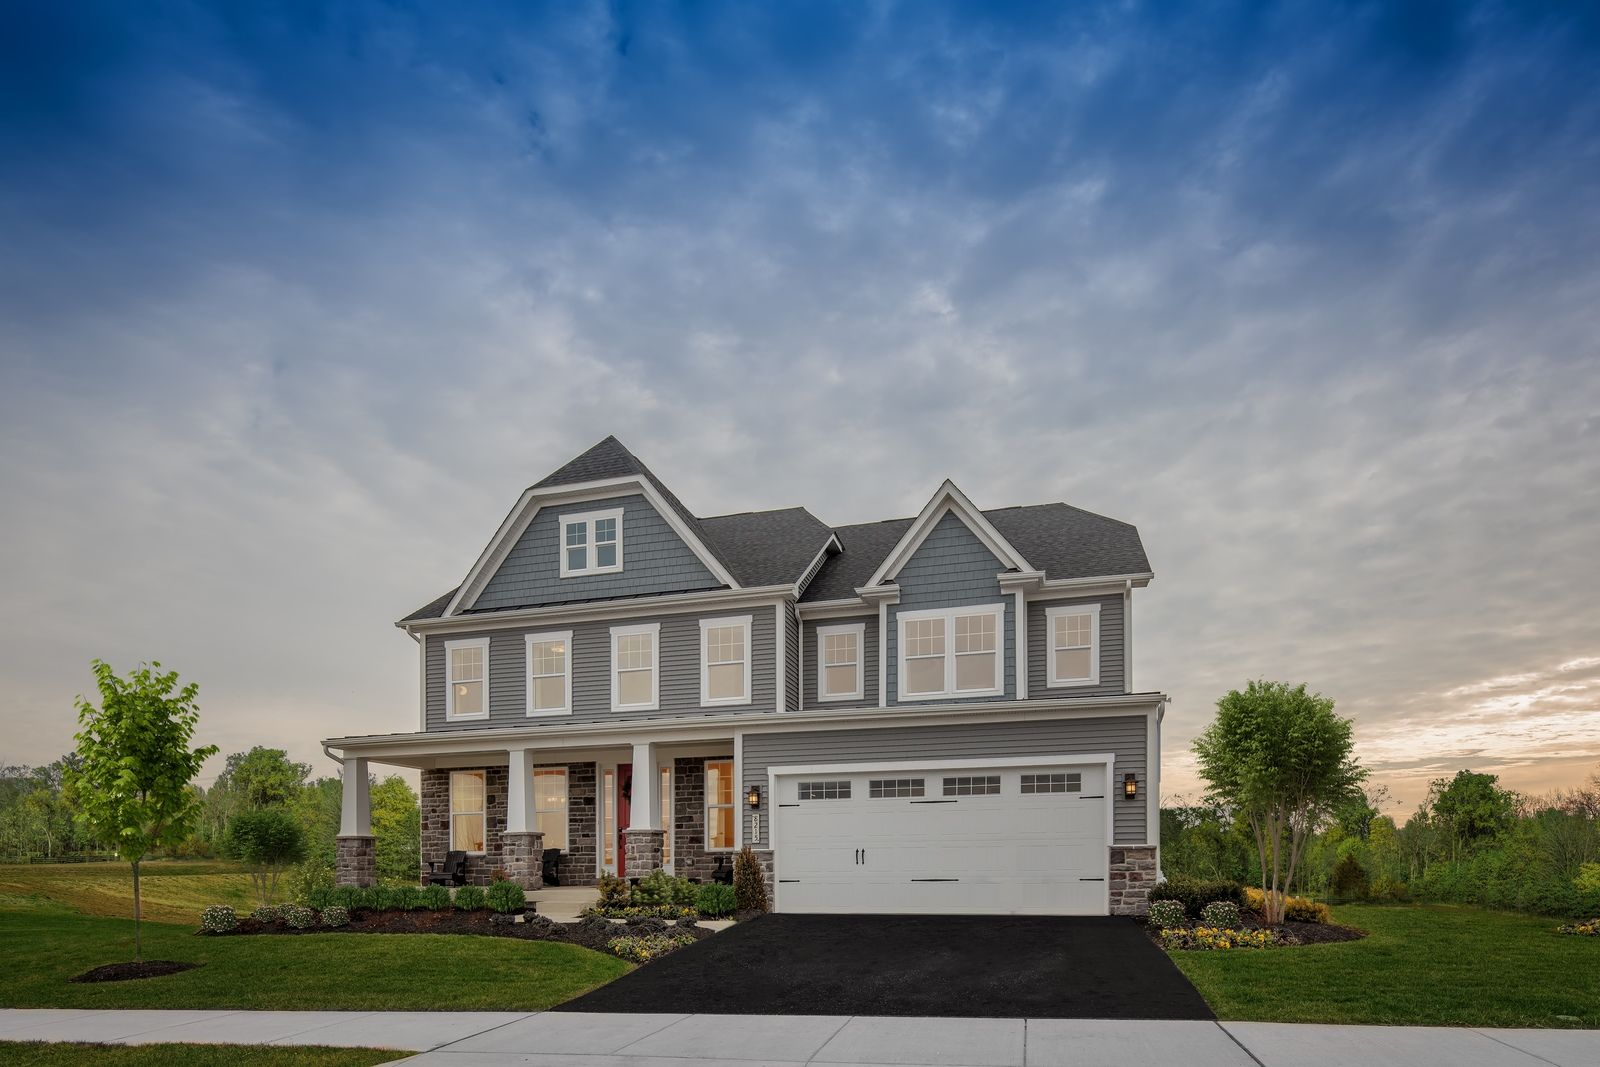 Welcome to Wellesley:The closest new homes to Rehoboth Beach. Enjoy luxury features on the largest homesites in the area. Wooded & pond view backyards & basements available.Schedule your appointment!